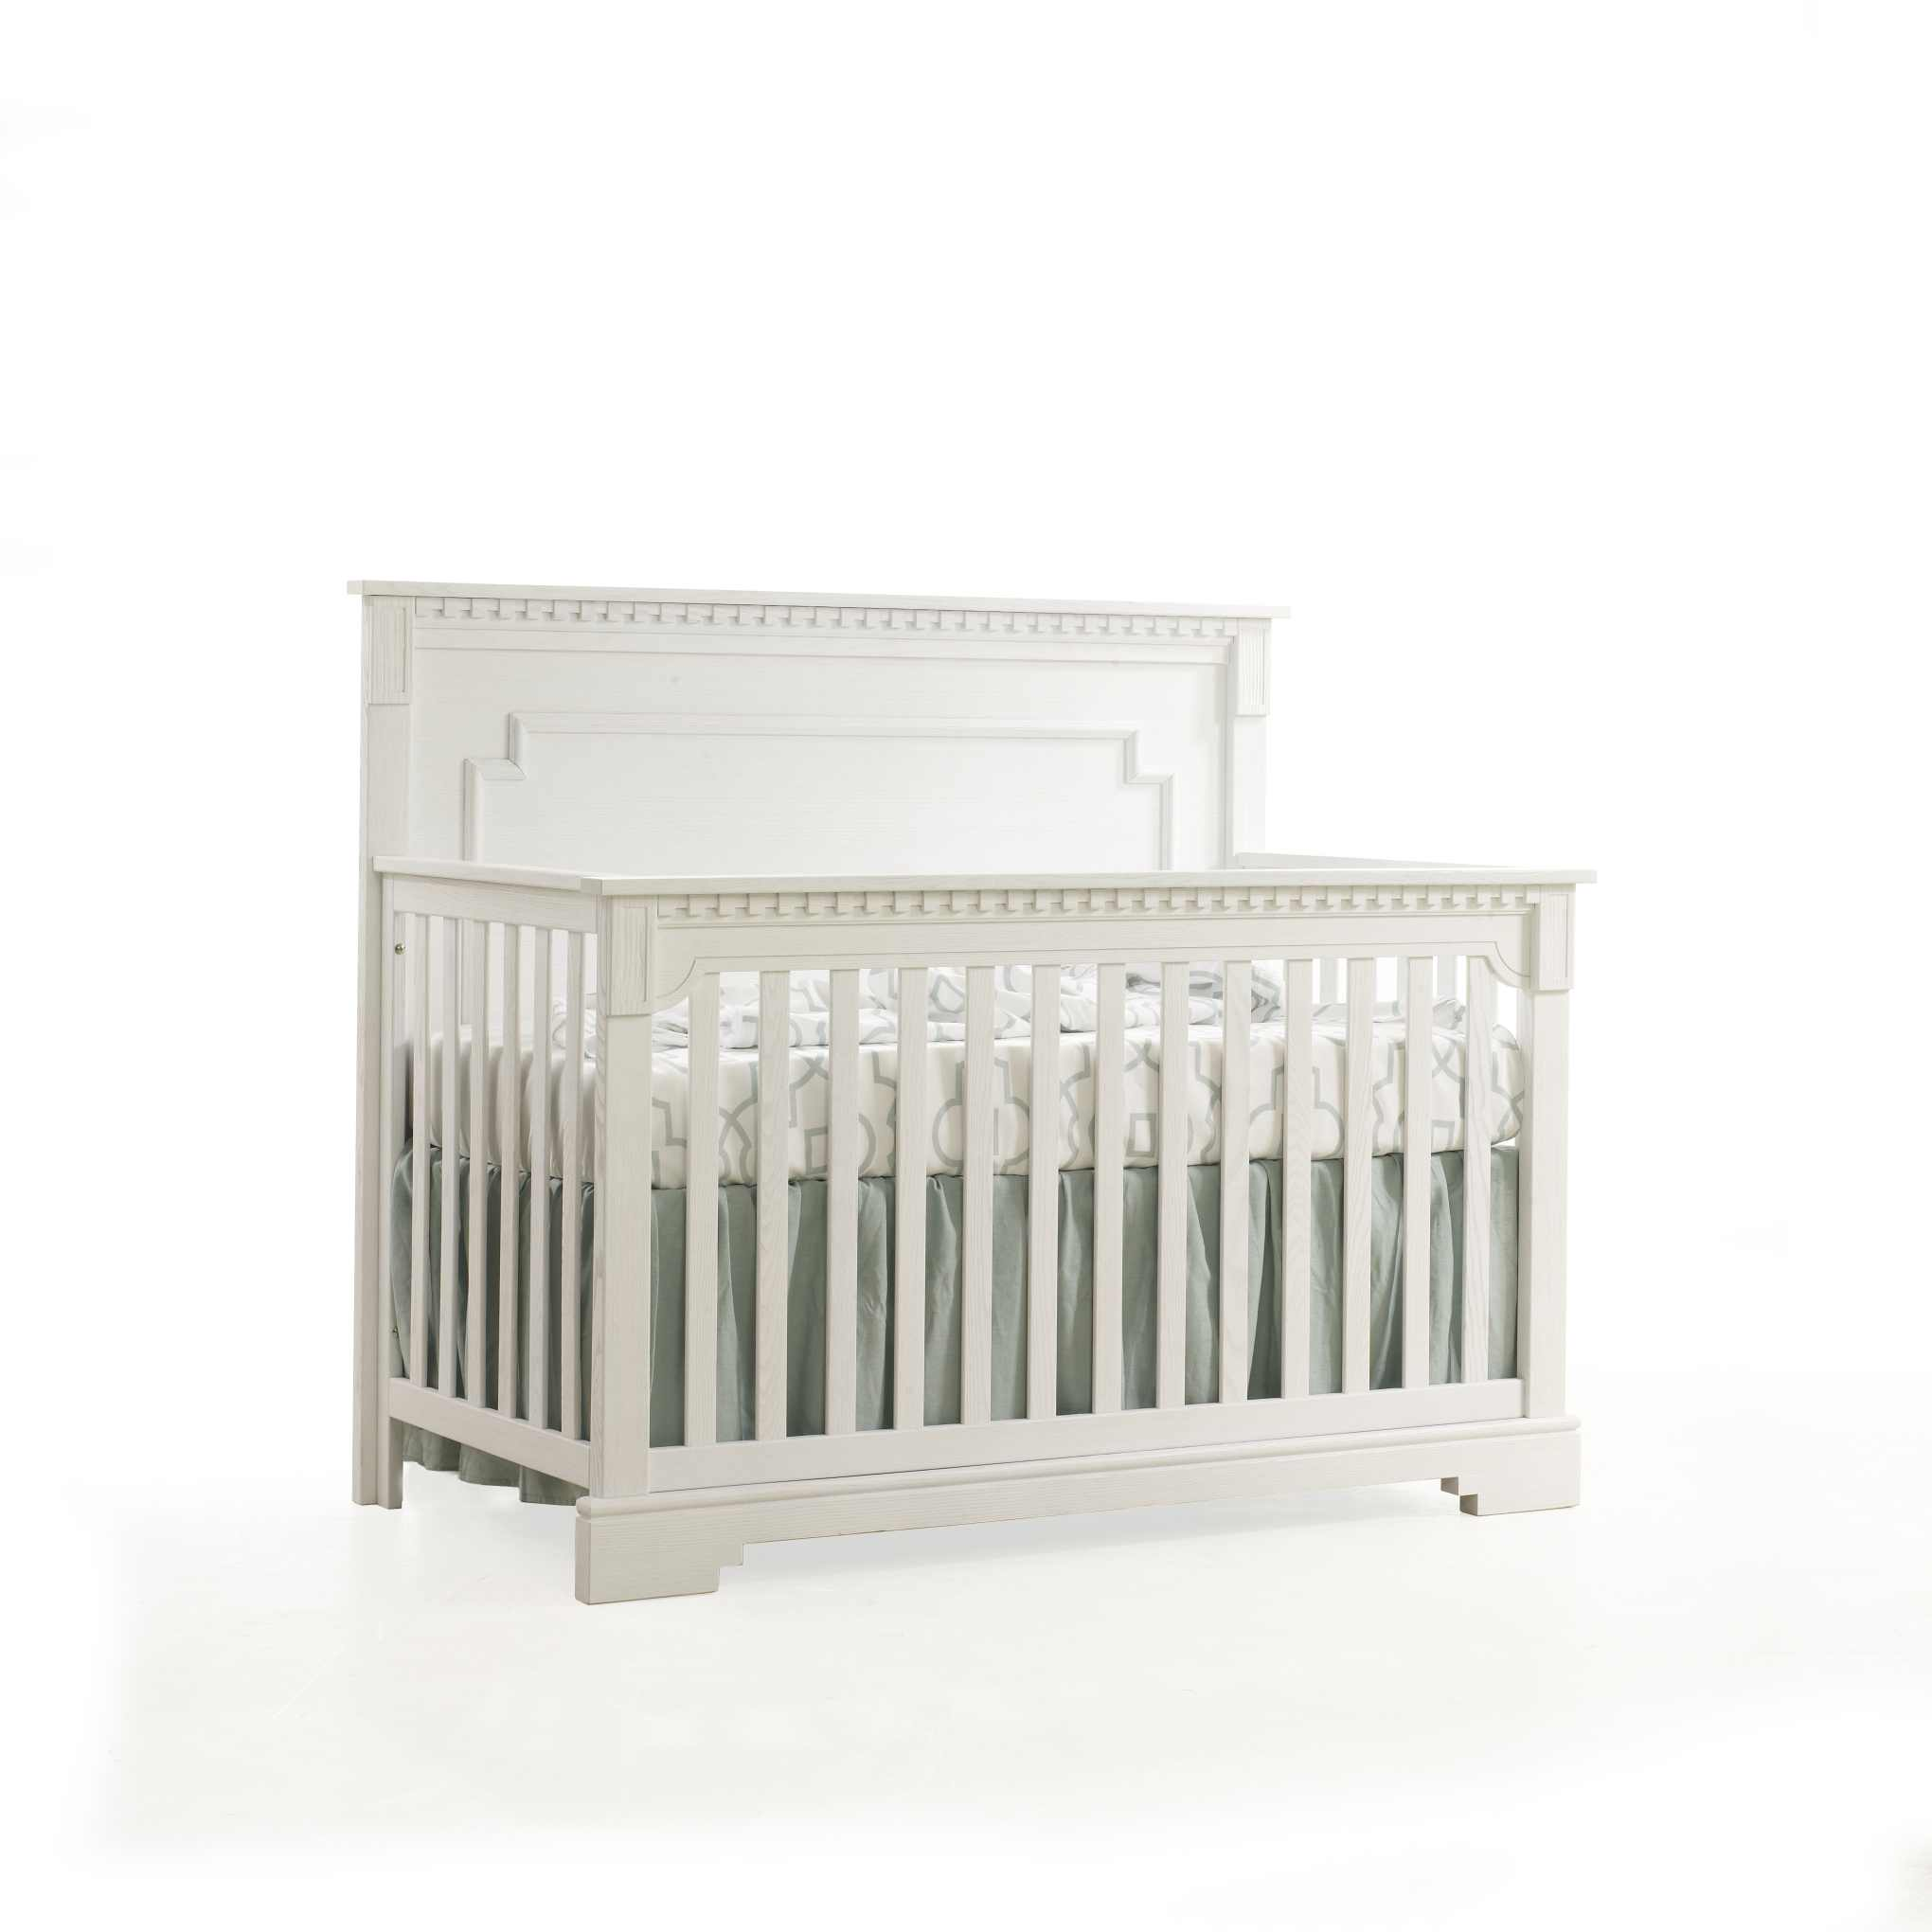 "Ithaca ""5-in-1"" Convertible Crib - Sleepy Hollow Canada"